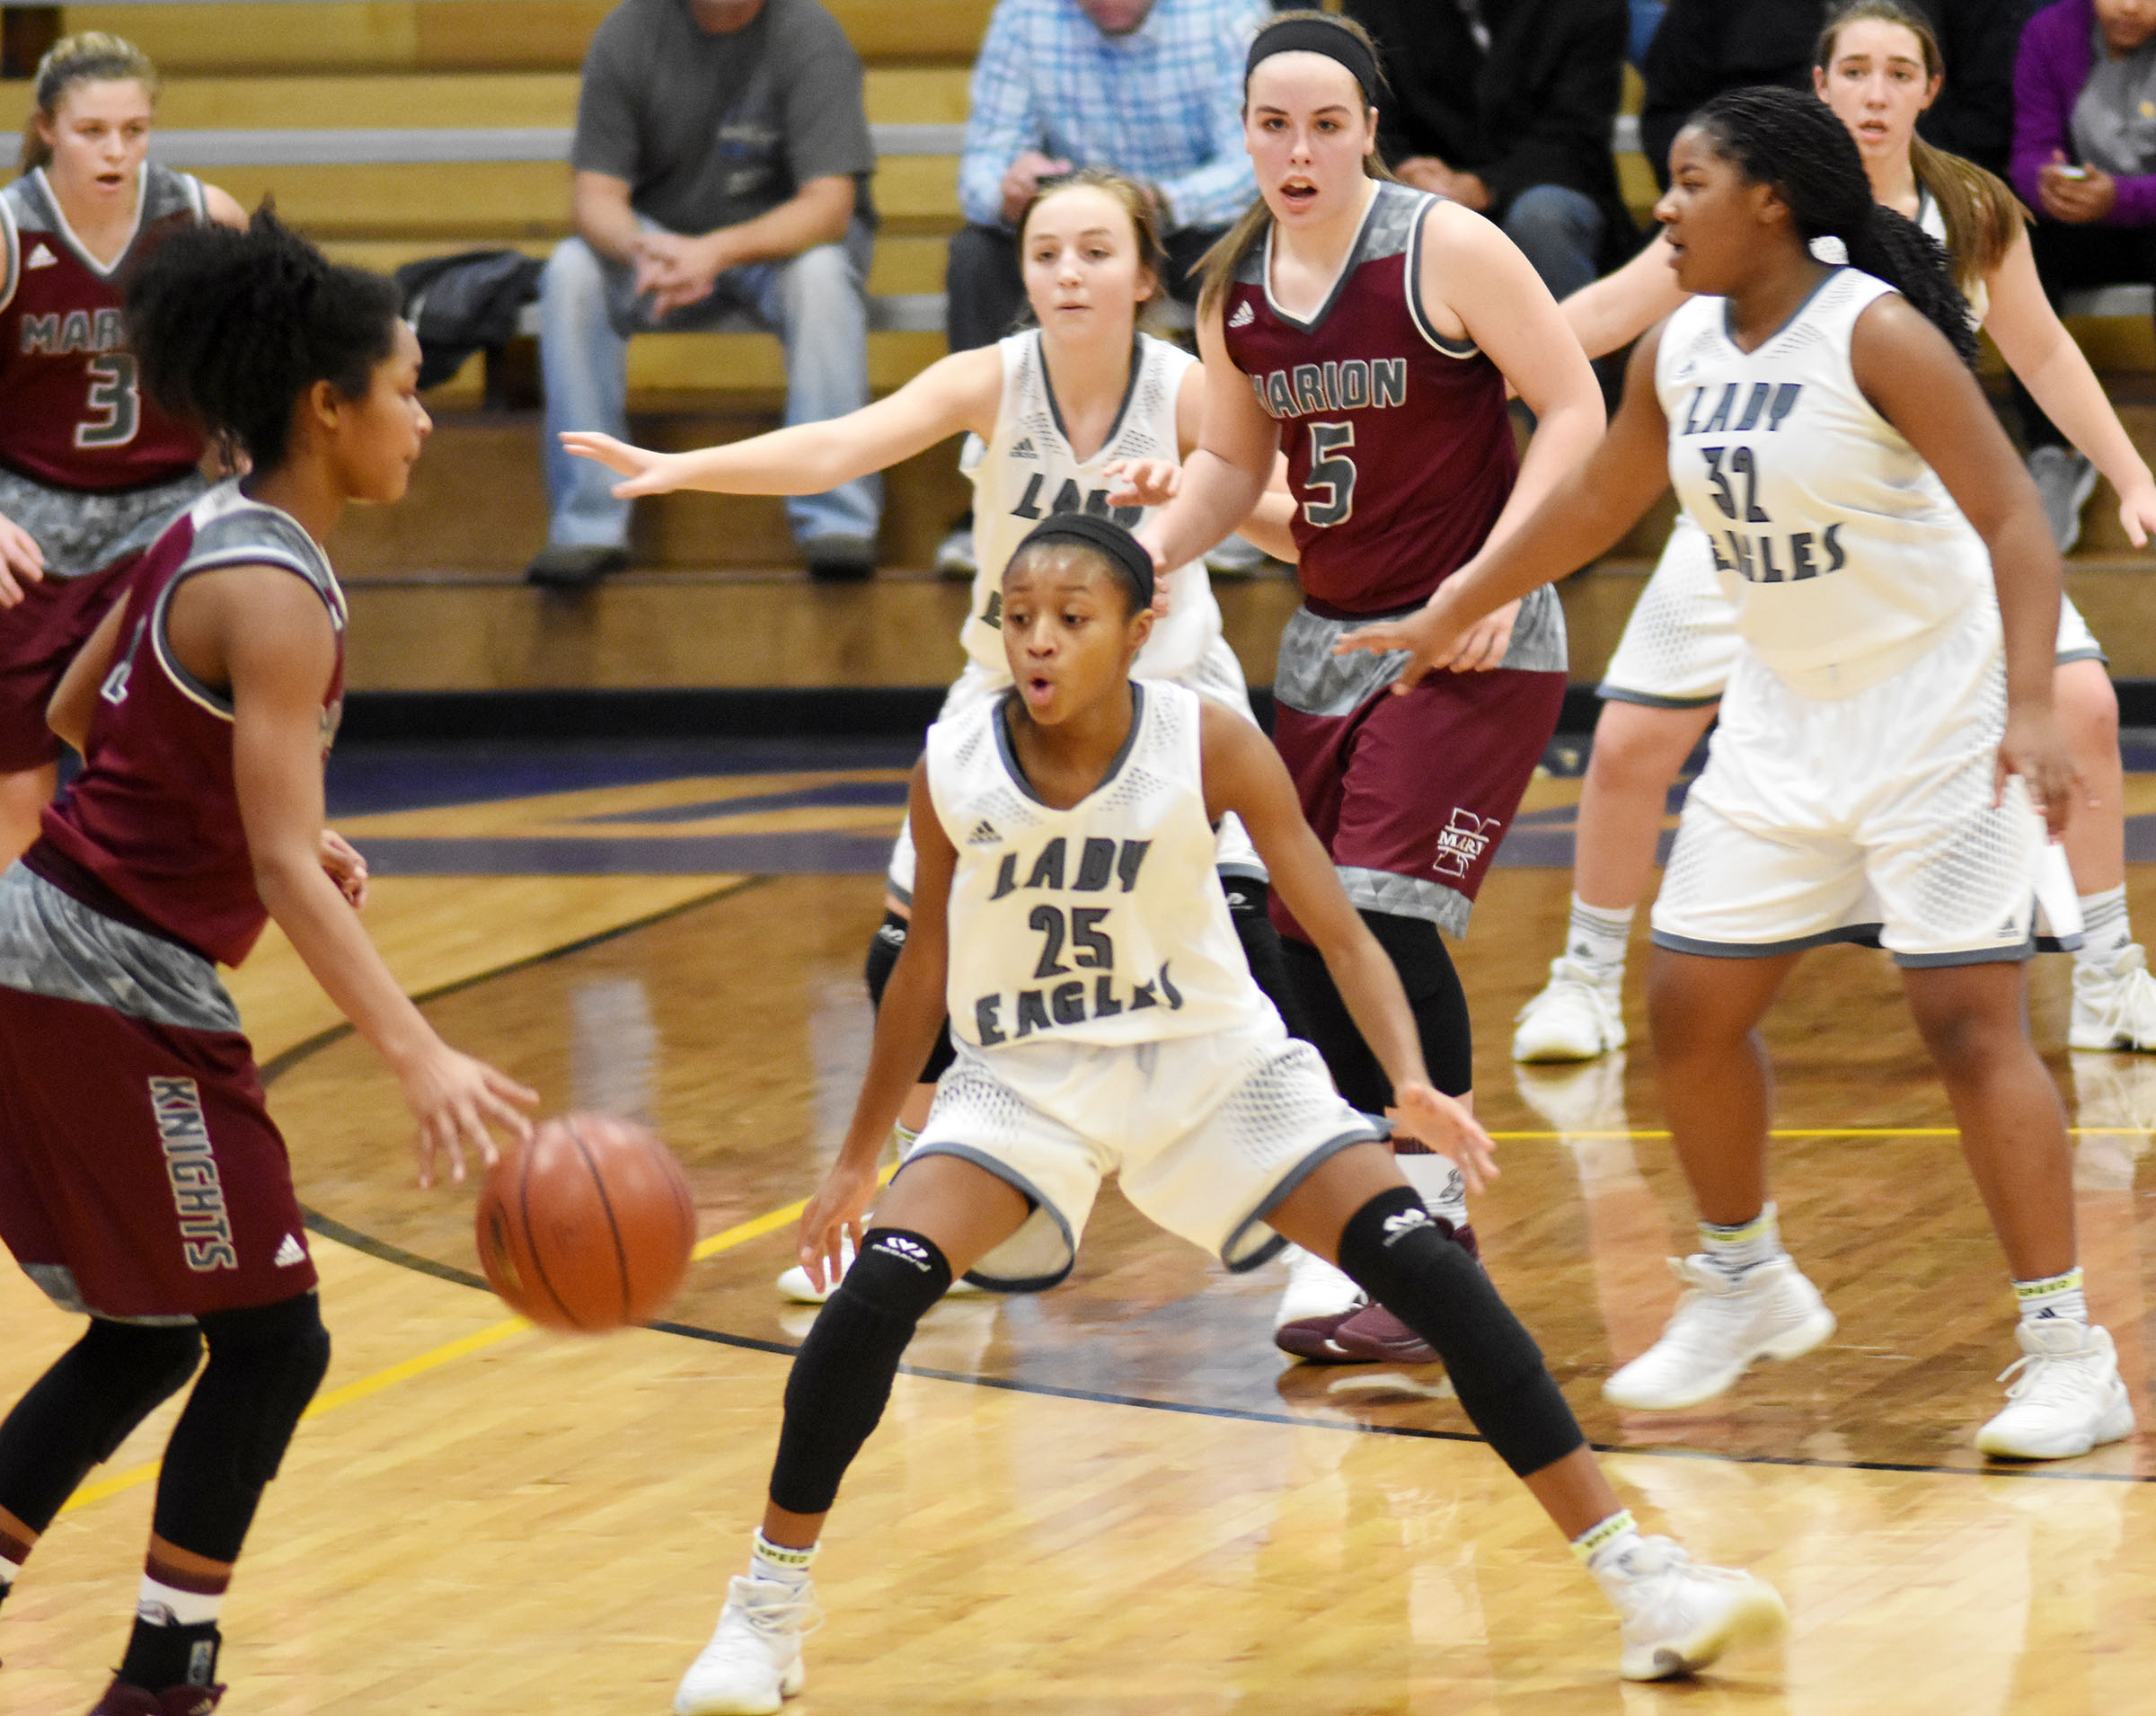 Campbellsville Middle School eighth-grader Bri Gowdy and her teammates play defense.